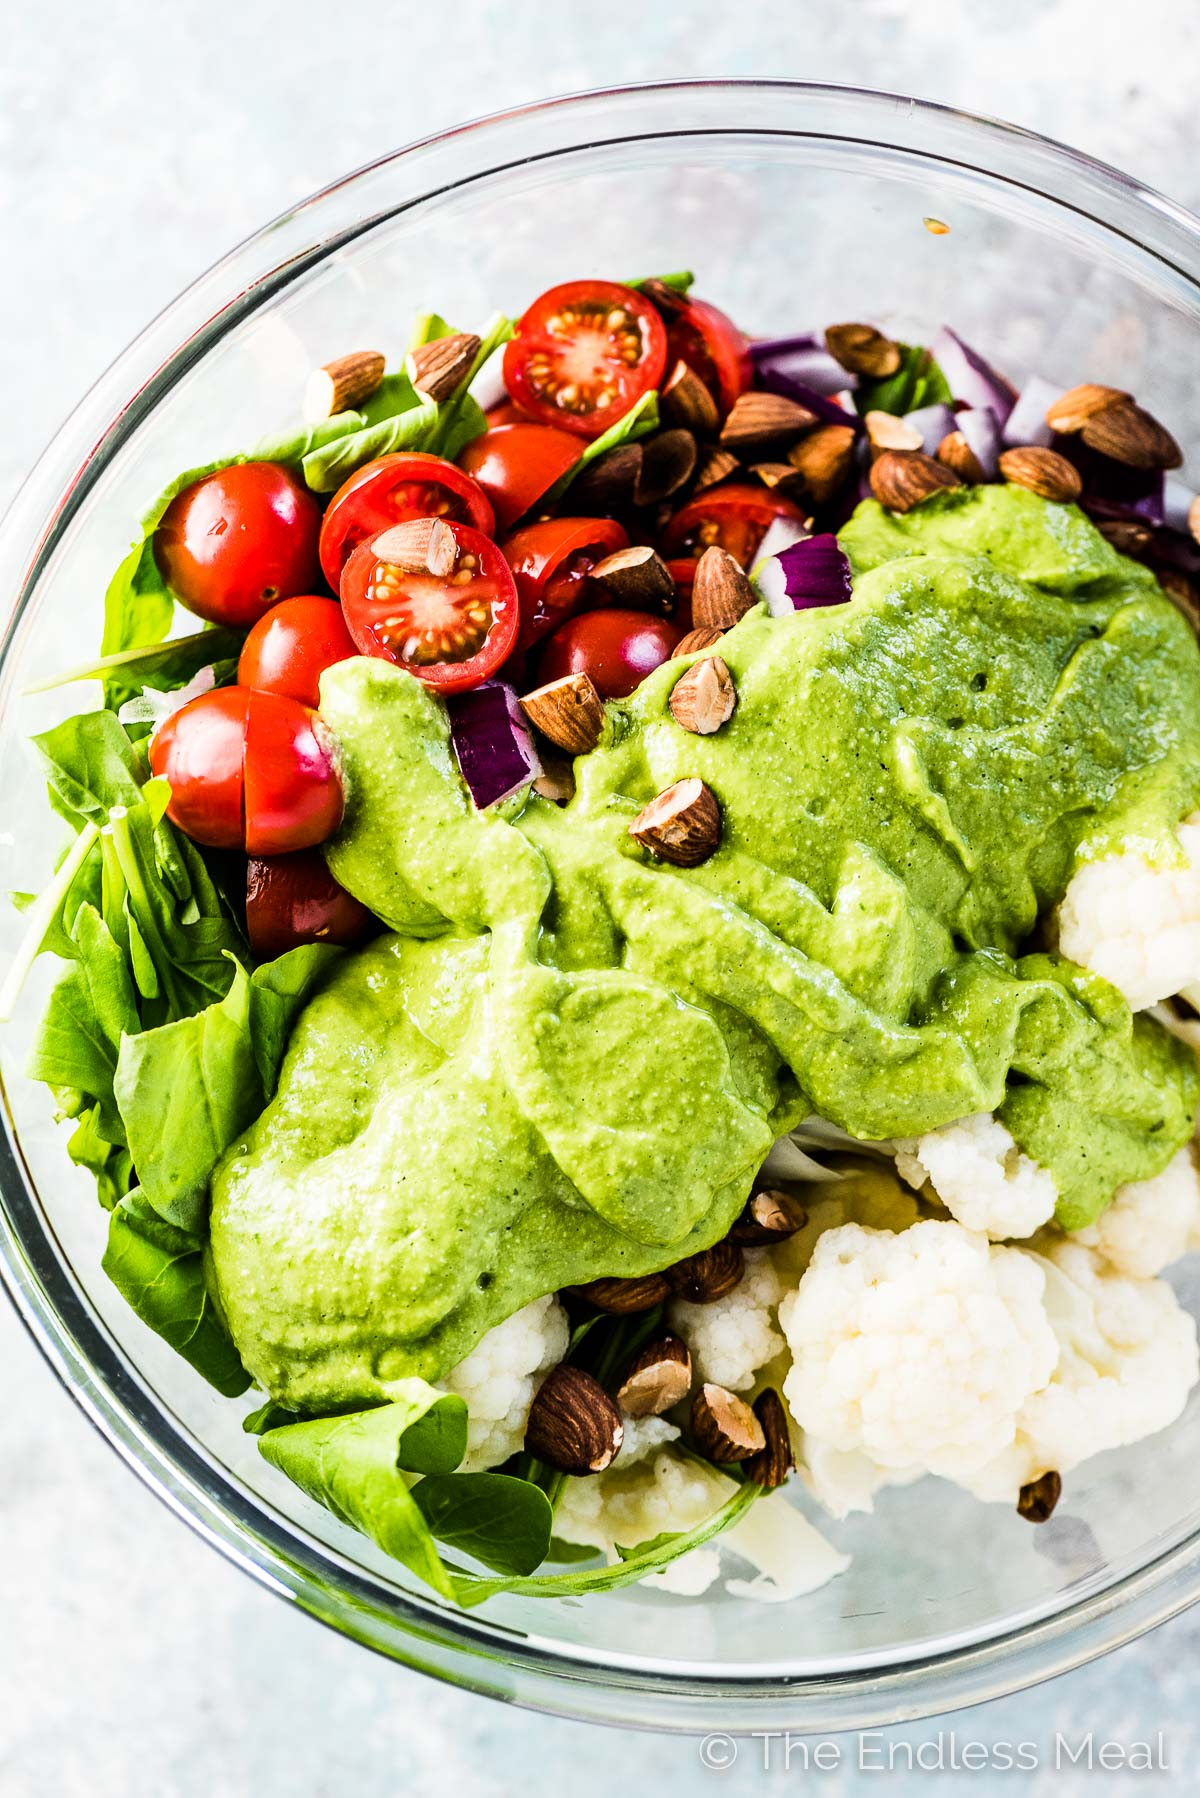 This cauliflower salad recipe in a glass bowl with avocado pesto salad dressing poured over the top.